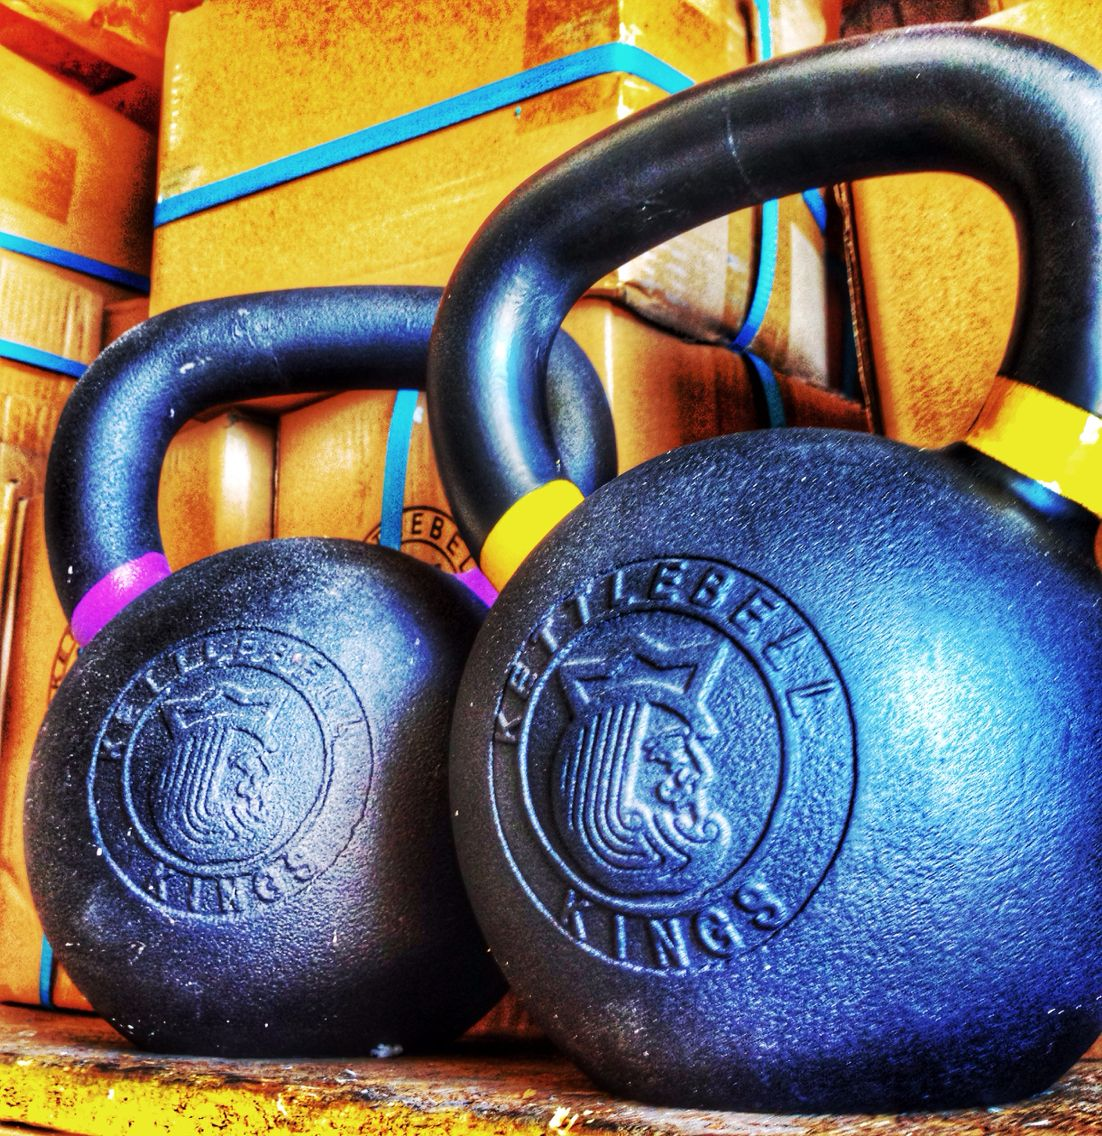 16kg 35lb And 20kg 44lb Kettlebells Headed Out Later Dudes Kettlebell Kettlebell Weights Kettlebell Workout